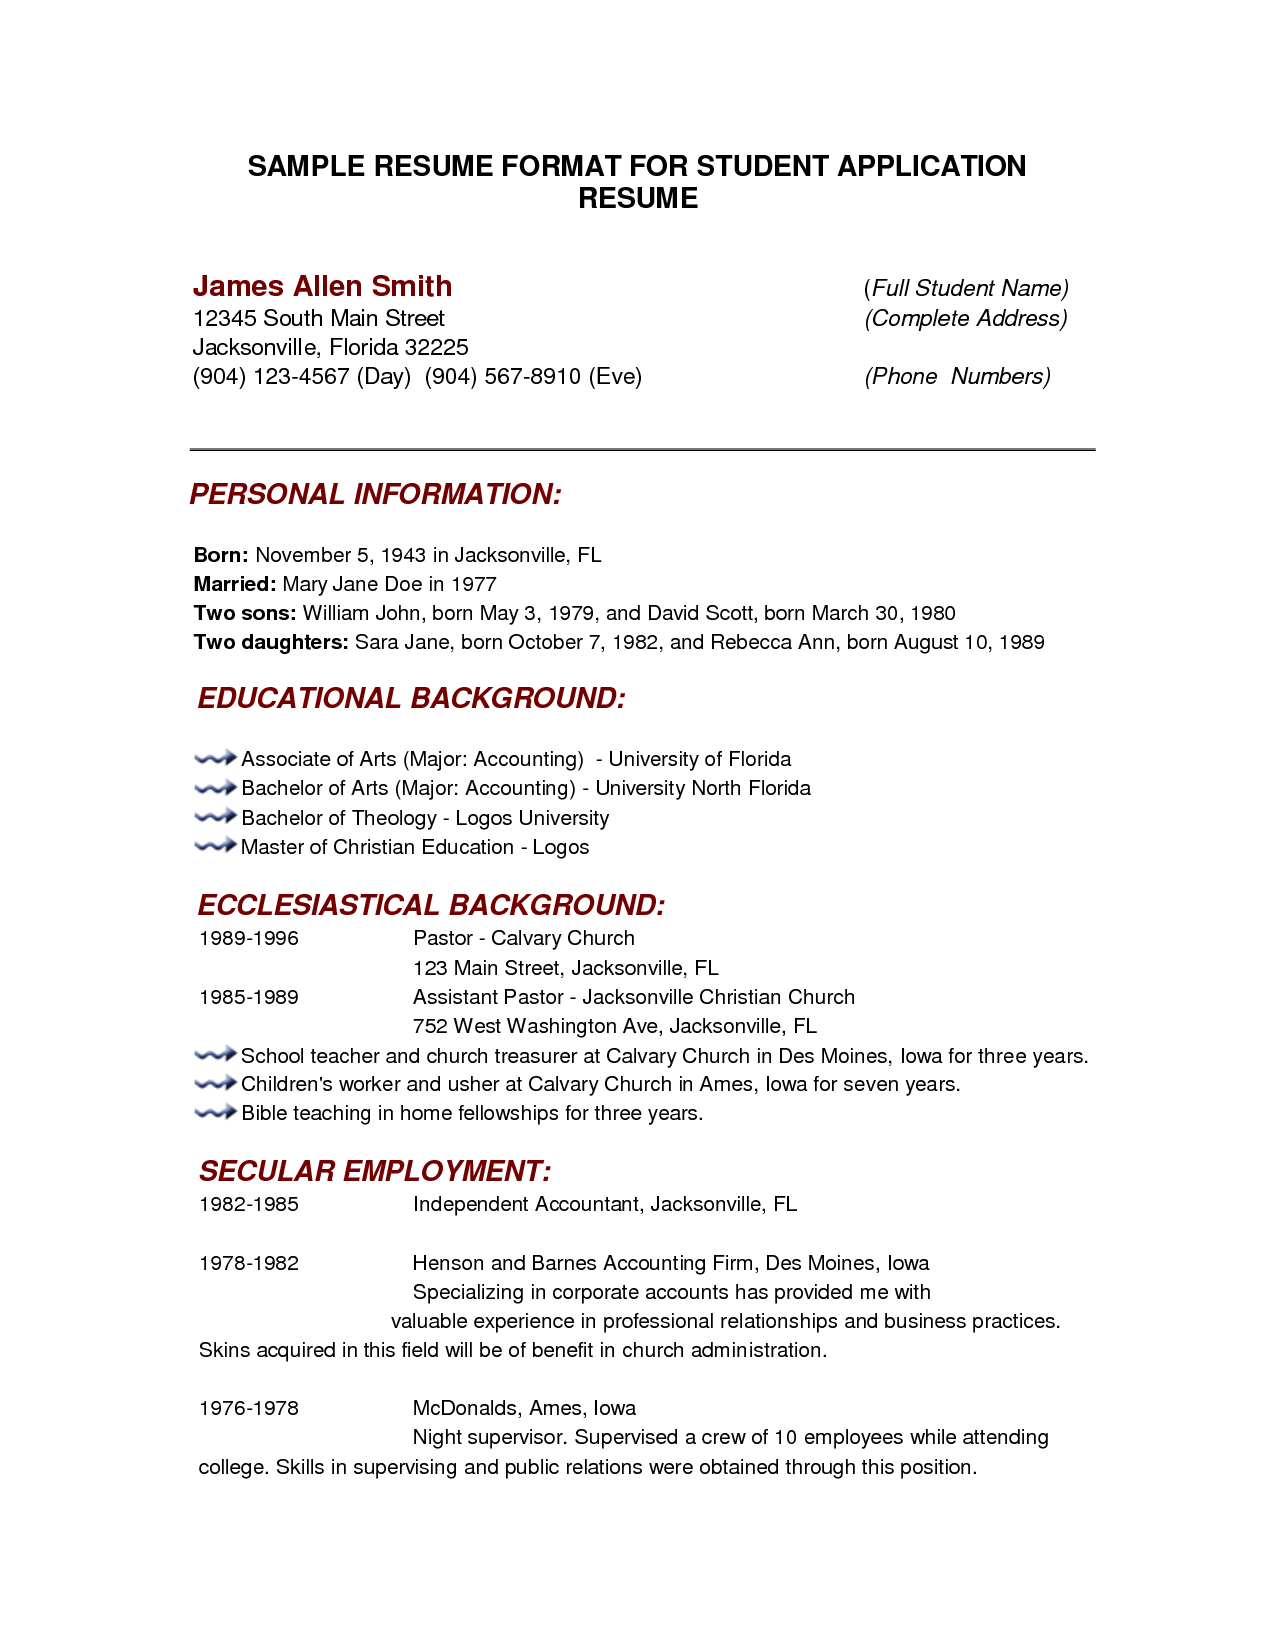 Resume Formats For Students - Resume Sample